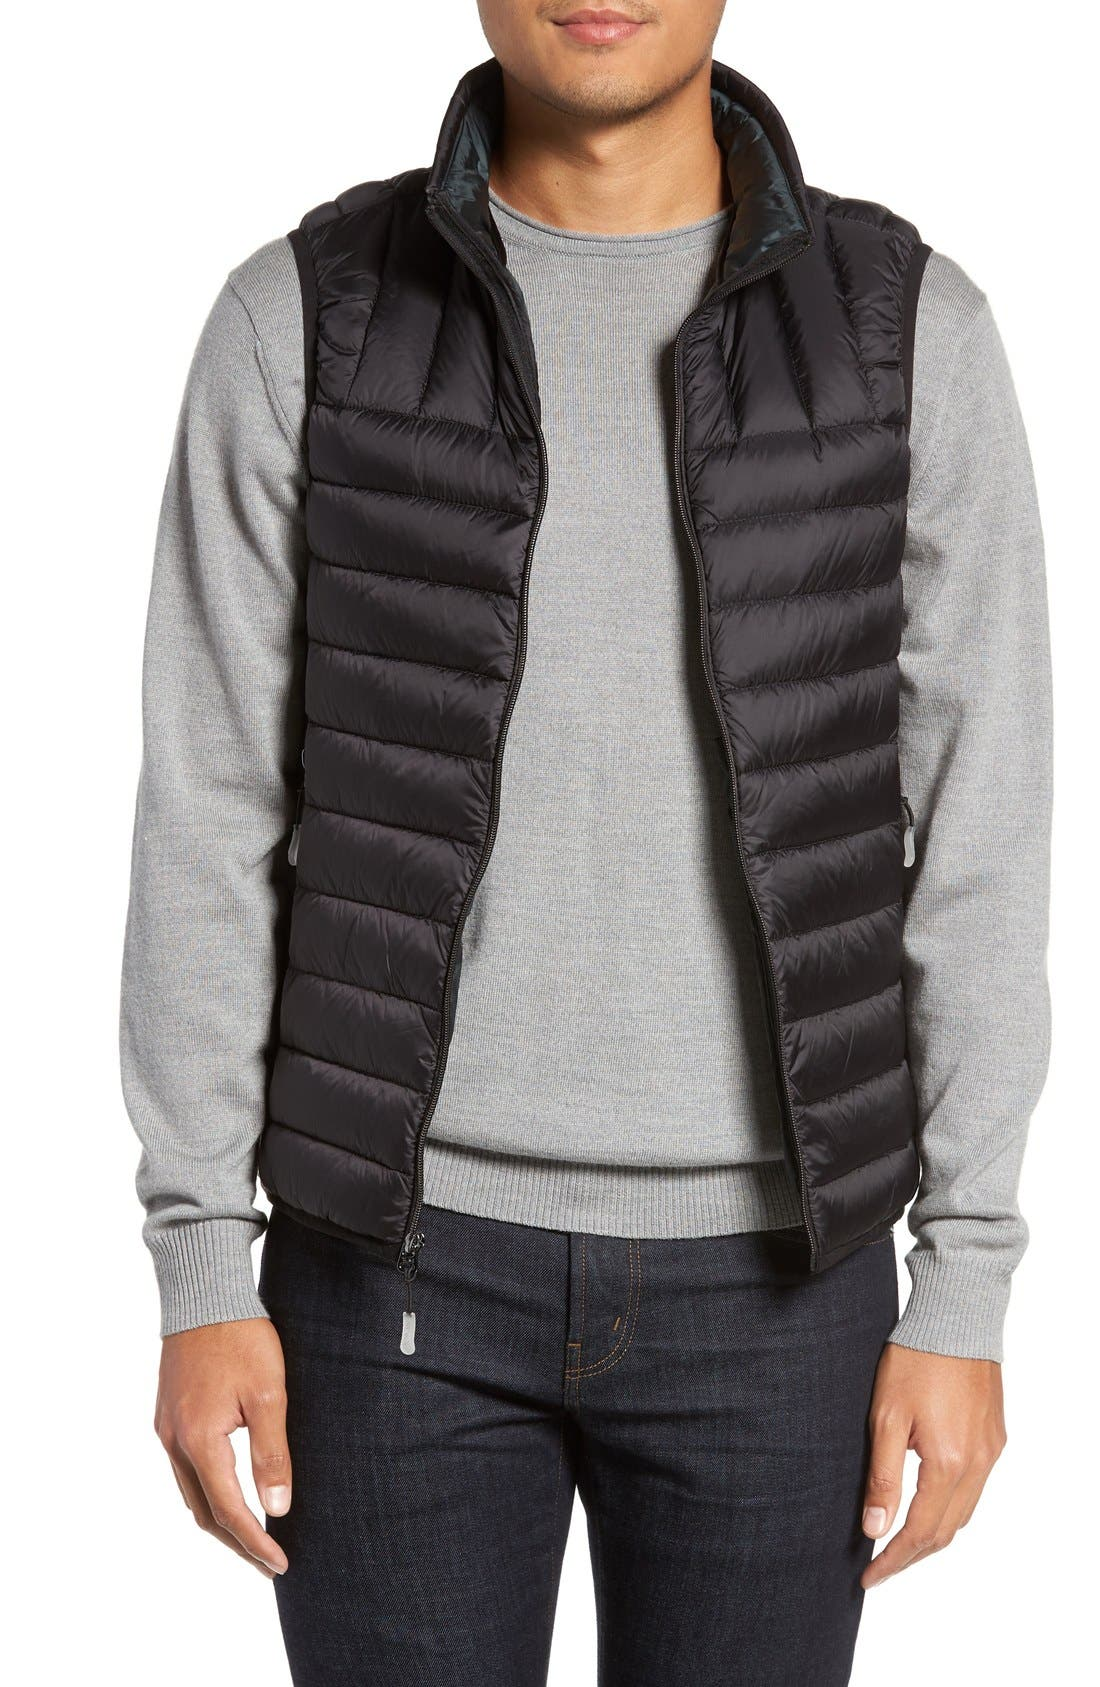 Men S Travel Vest Clothing